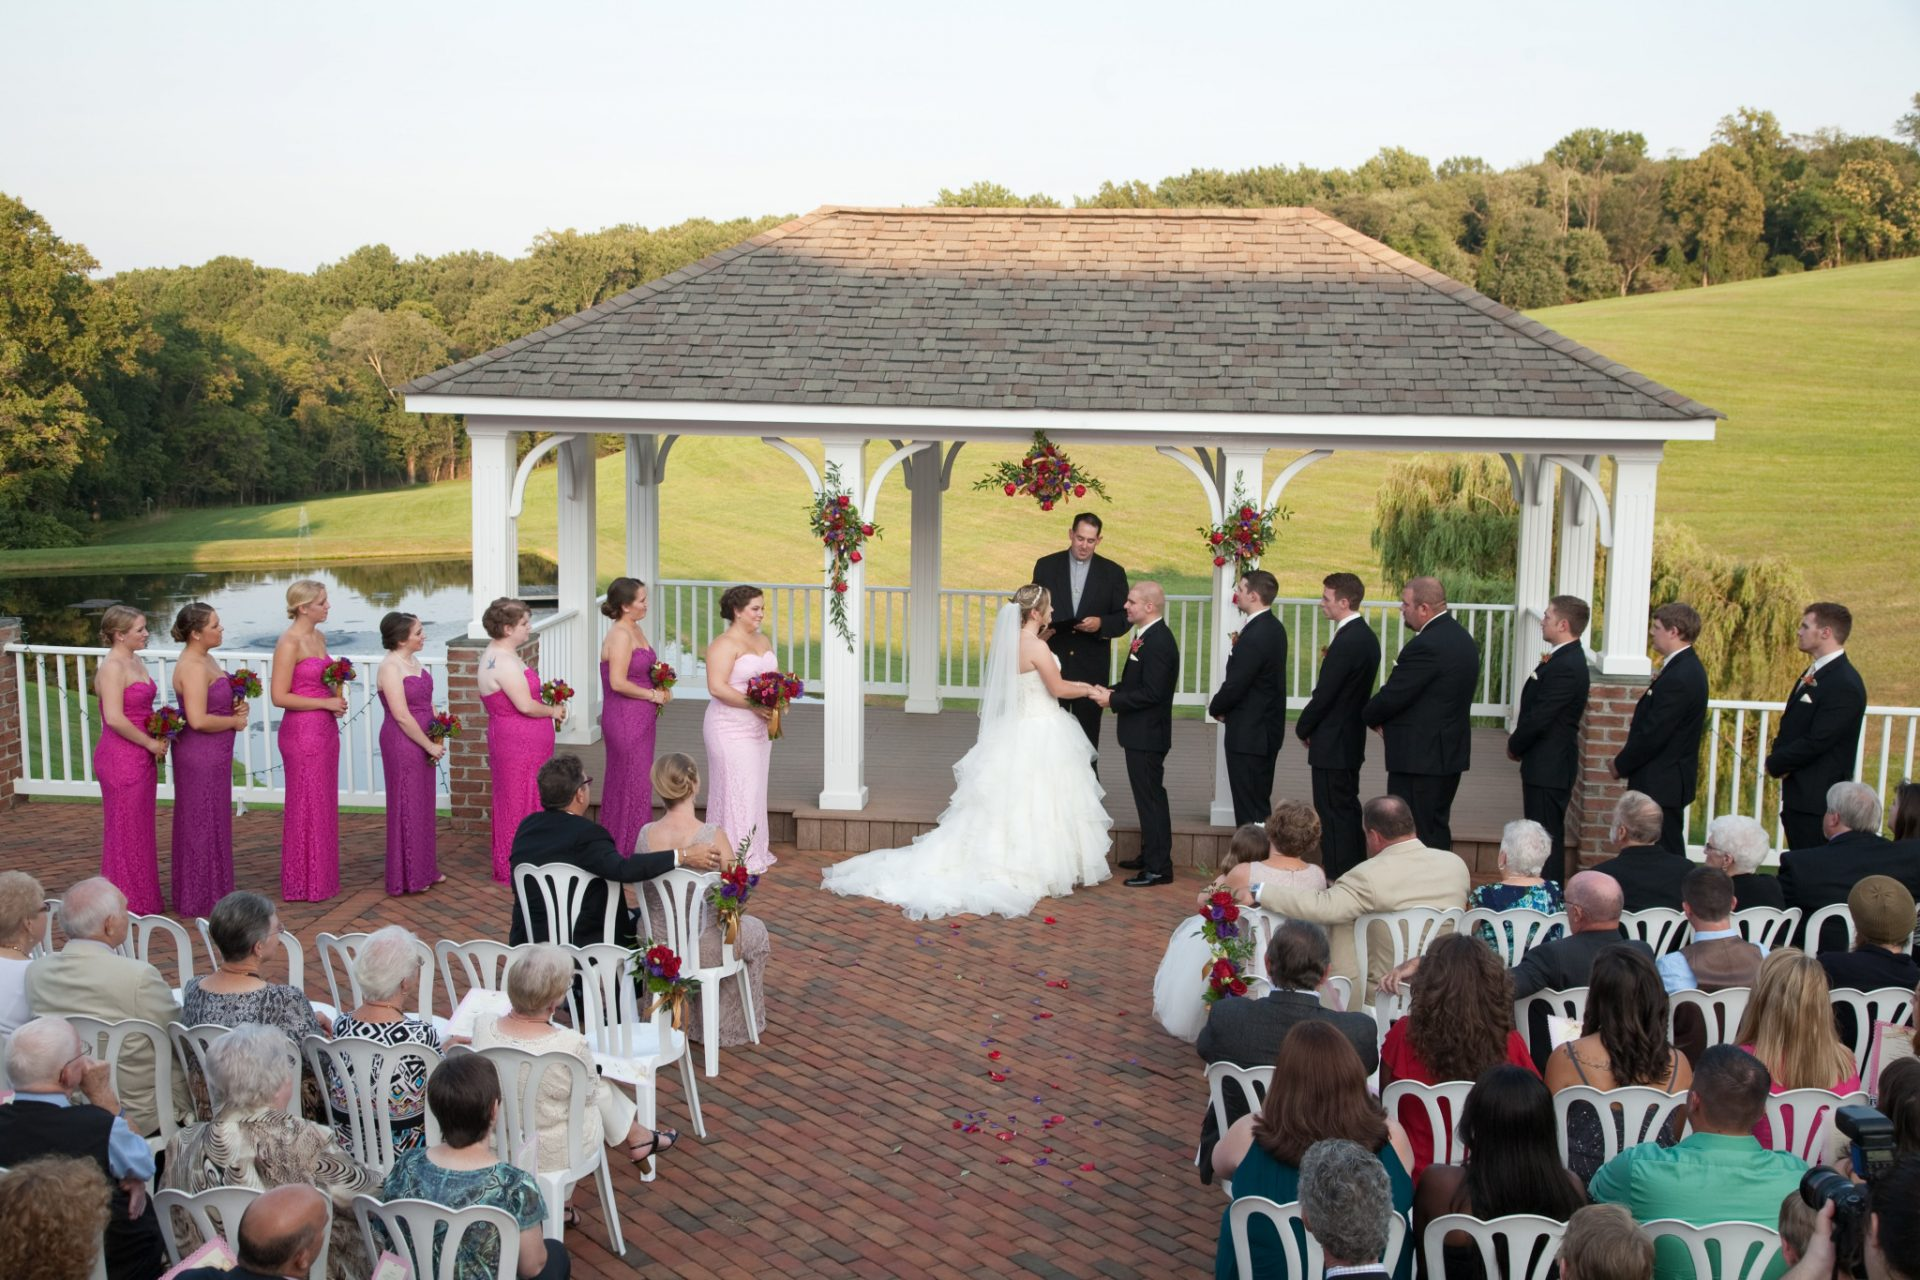 Bride and Groom exchange vows on pavilion during outdoor wedding ceremony